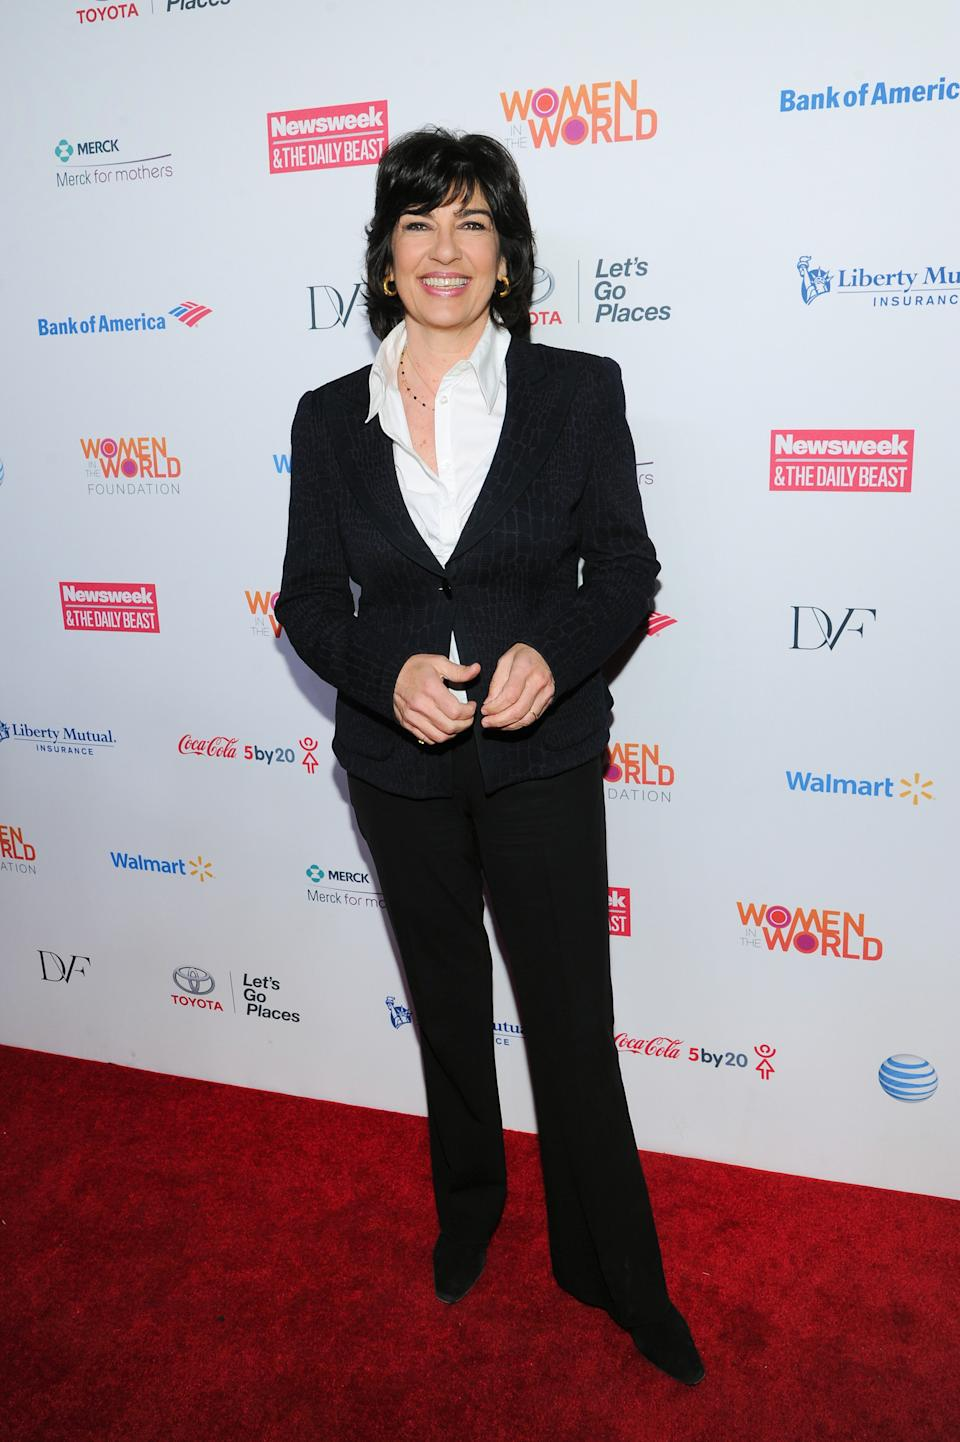 CNN news correspondent Christiane Amanpour attends the 4th Annual Women in the World Summit at the David H. Koch Theater on Thursday April 4, 2013 in New York. (Photo by Evan Agostini/Invision/AP)